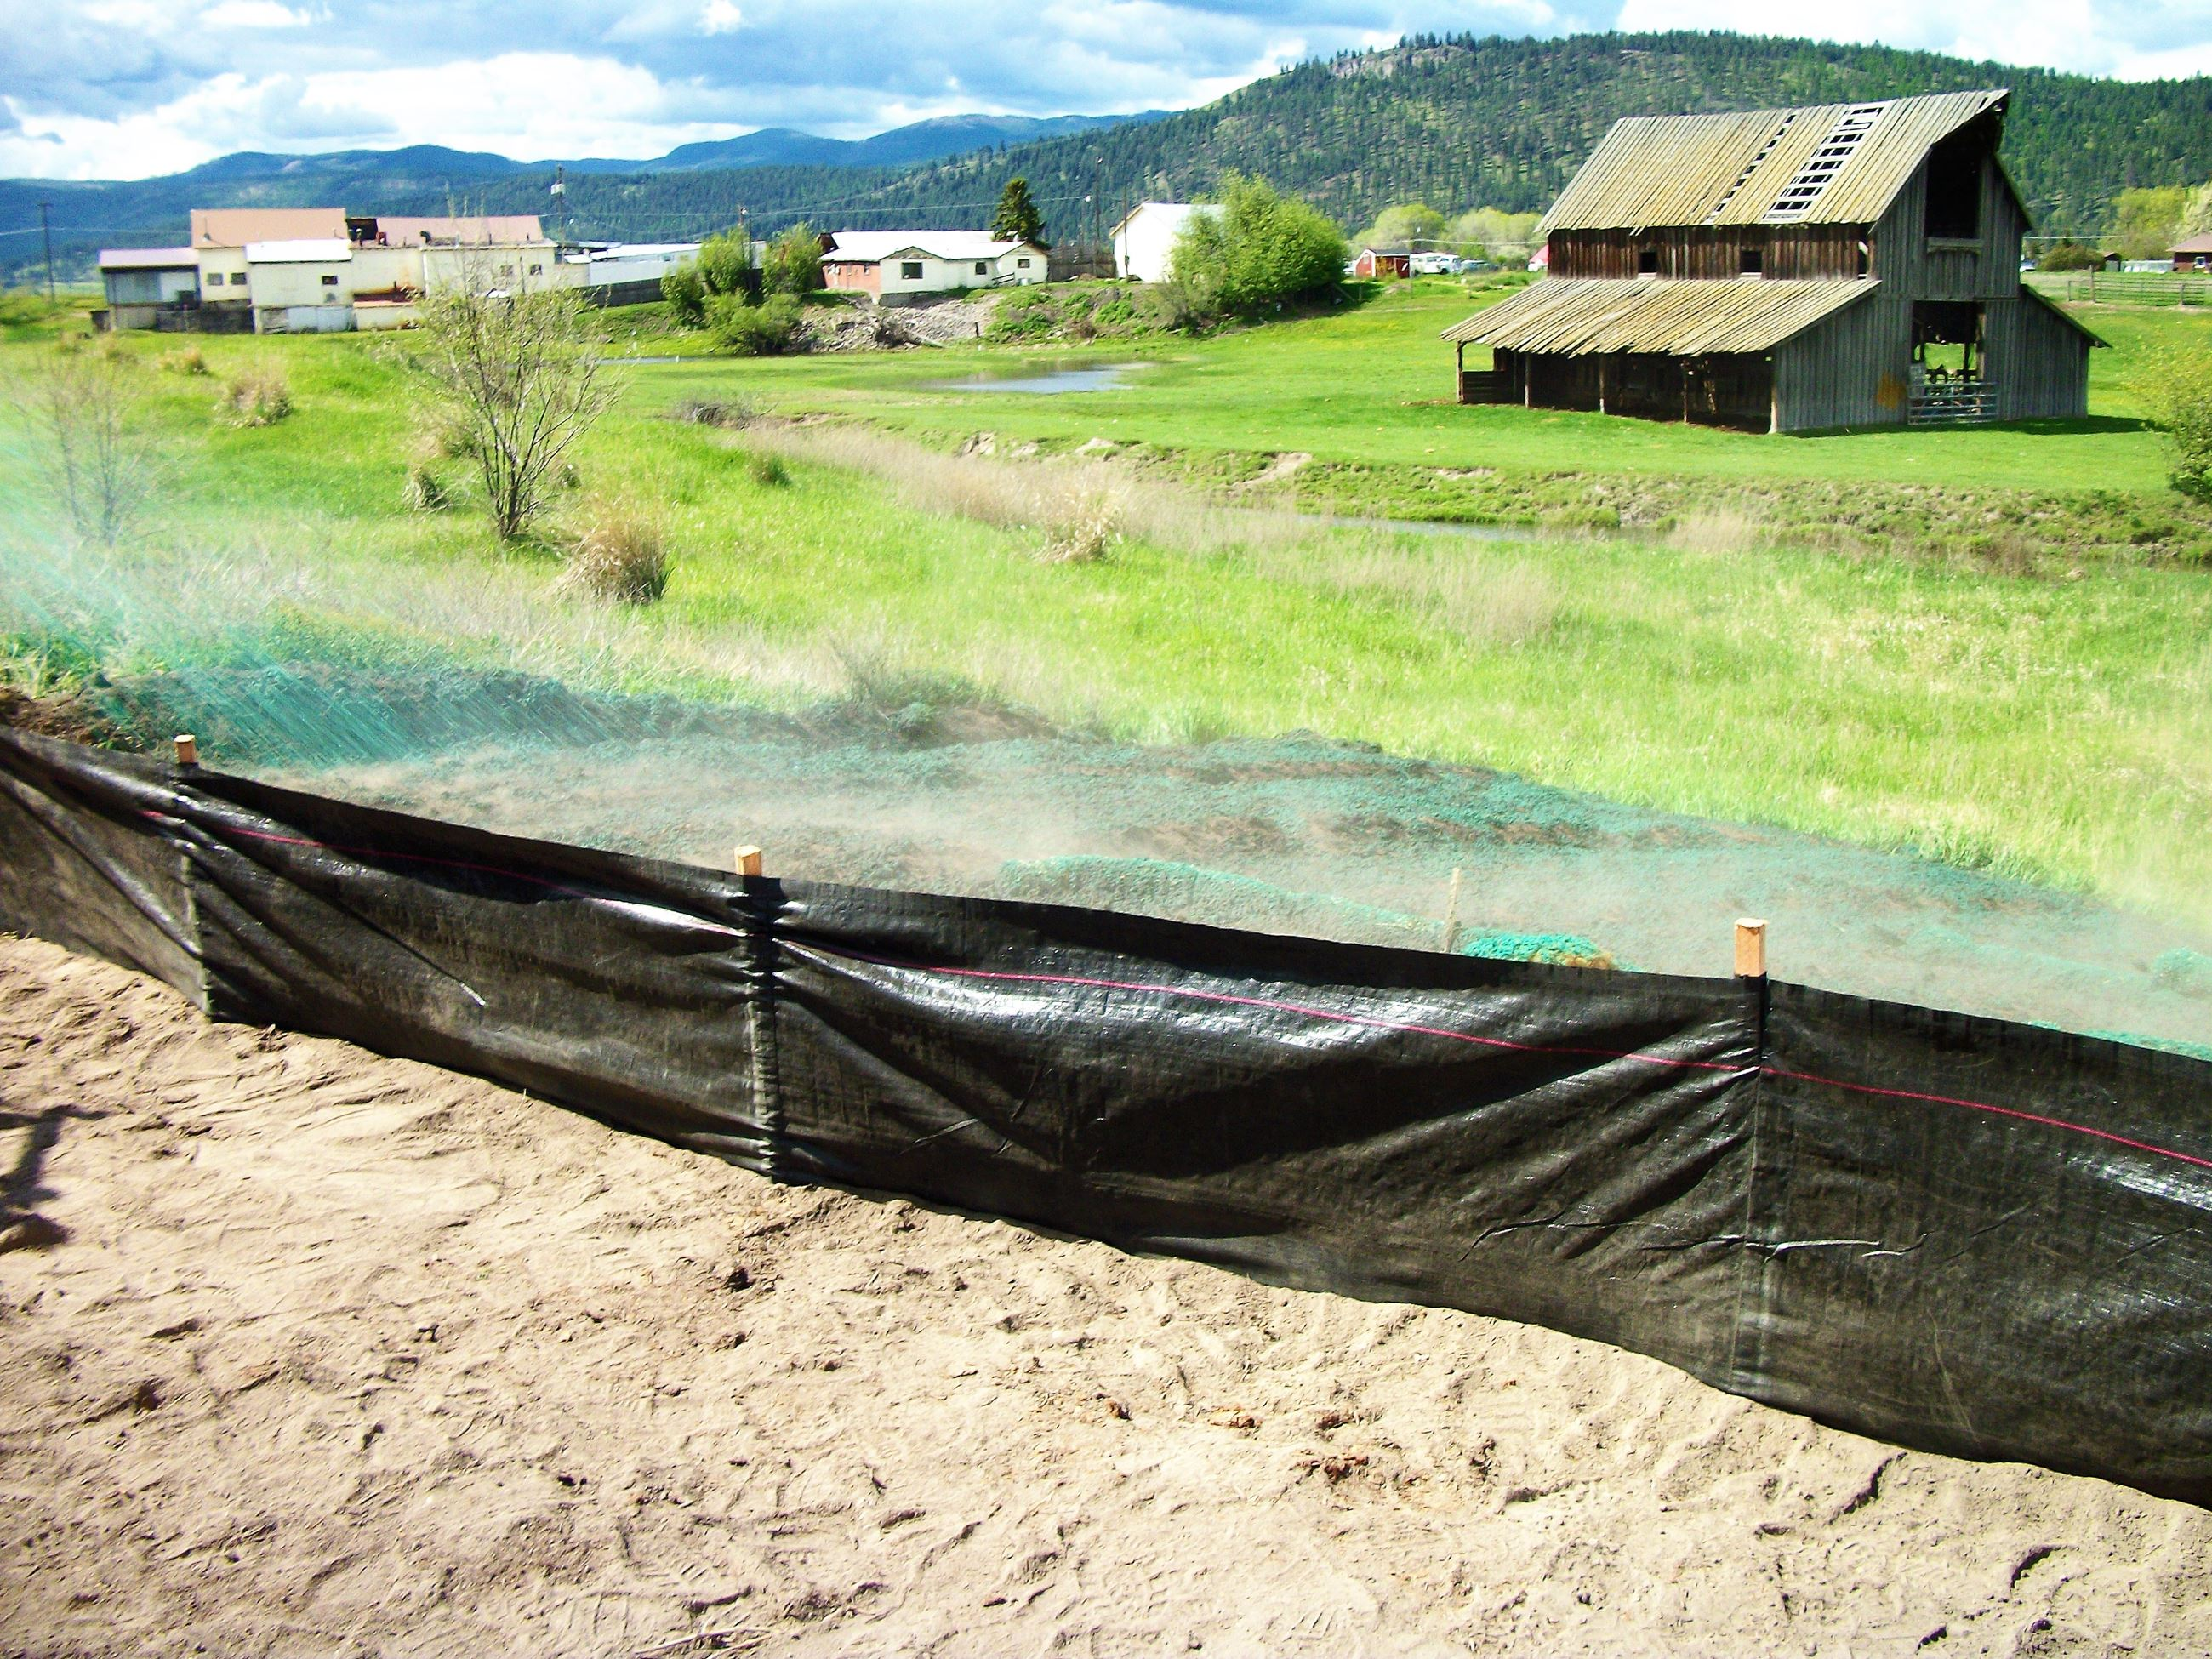 Silt fence protecting property and farm house in background